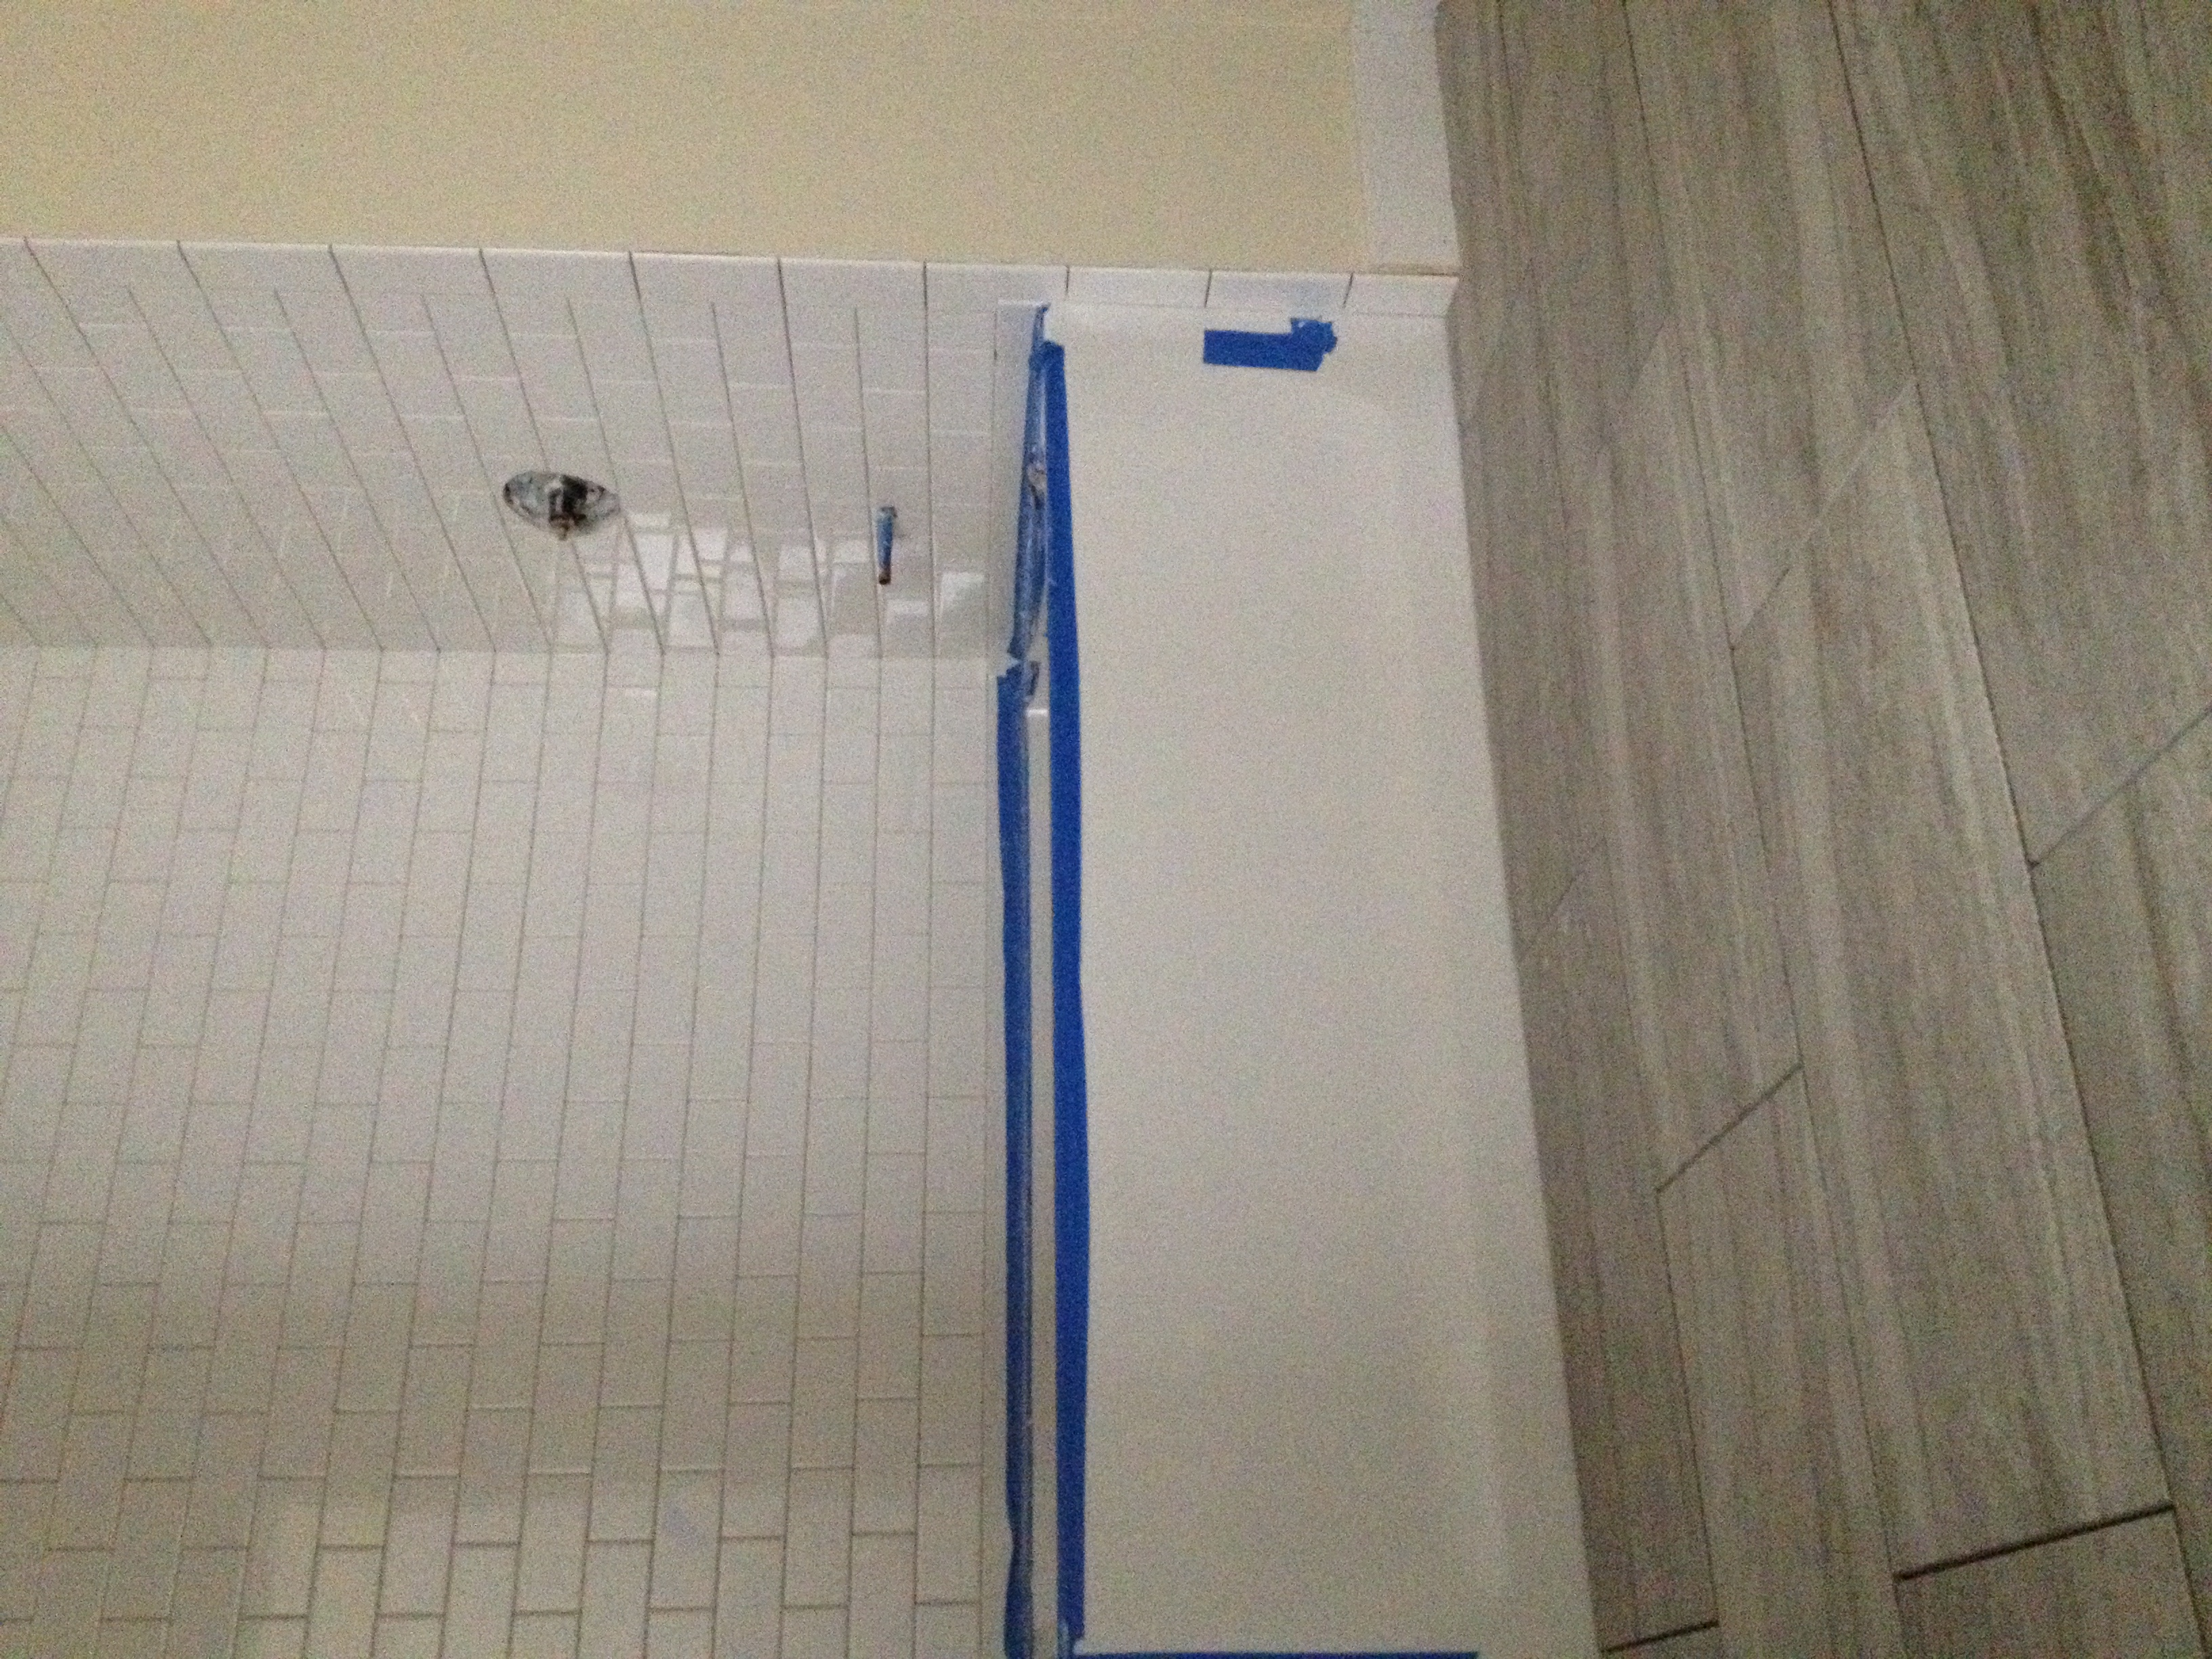 Tile surround and tile floors in Unit 101 bathroom.